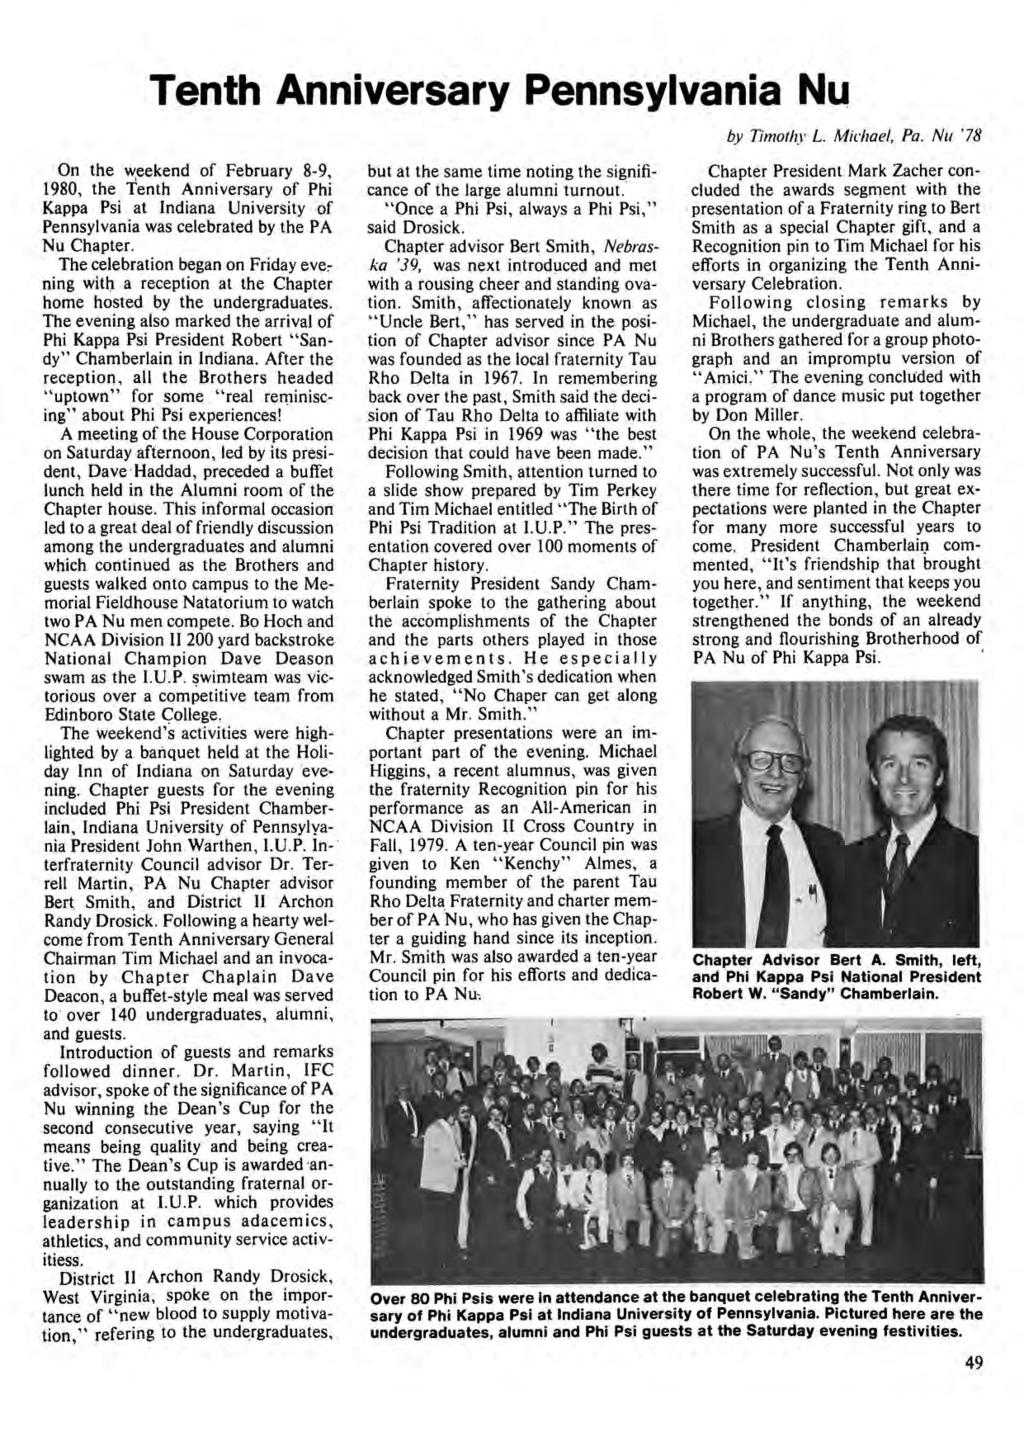 Tenth Anniversary Pennsylvania Nu On the weekend of February 8-9, 1980, the Tenth Anniversary of Phi Kappa Psi at Indiana University of Pennsylvania was celebrated by the PA Nu Chapter.